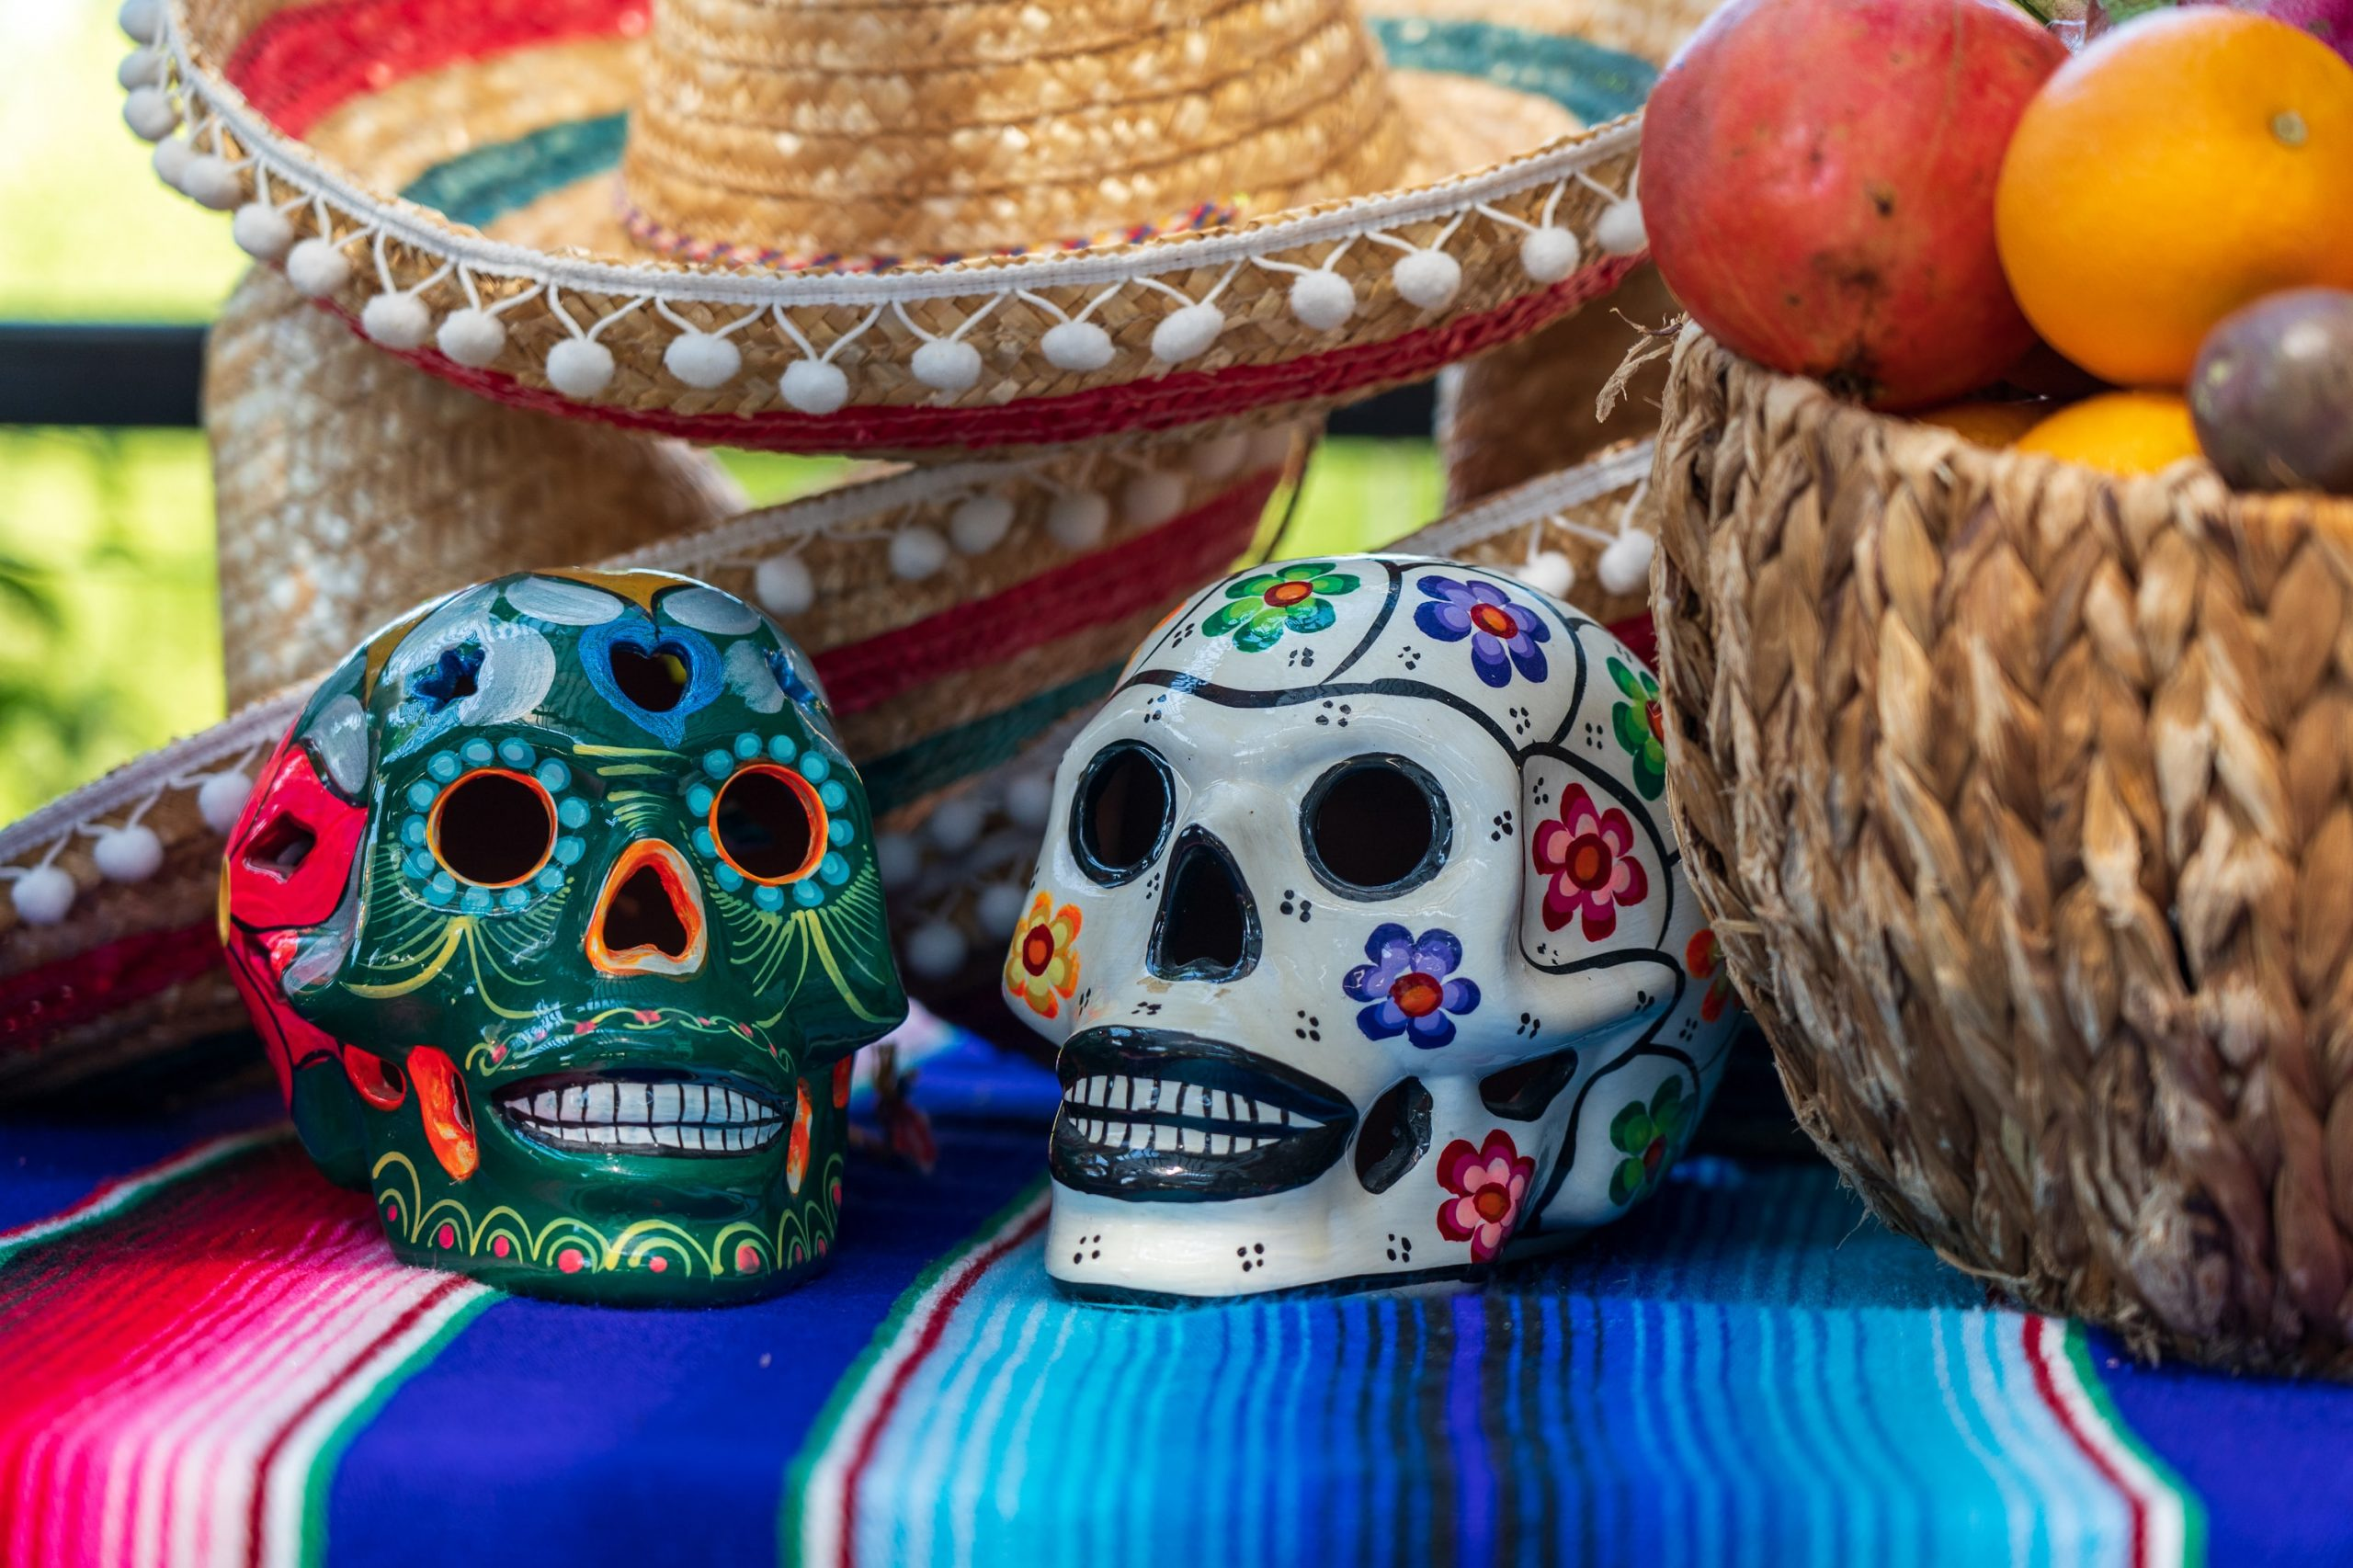 Mexico's day of the dead in November